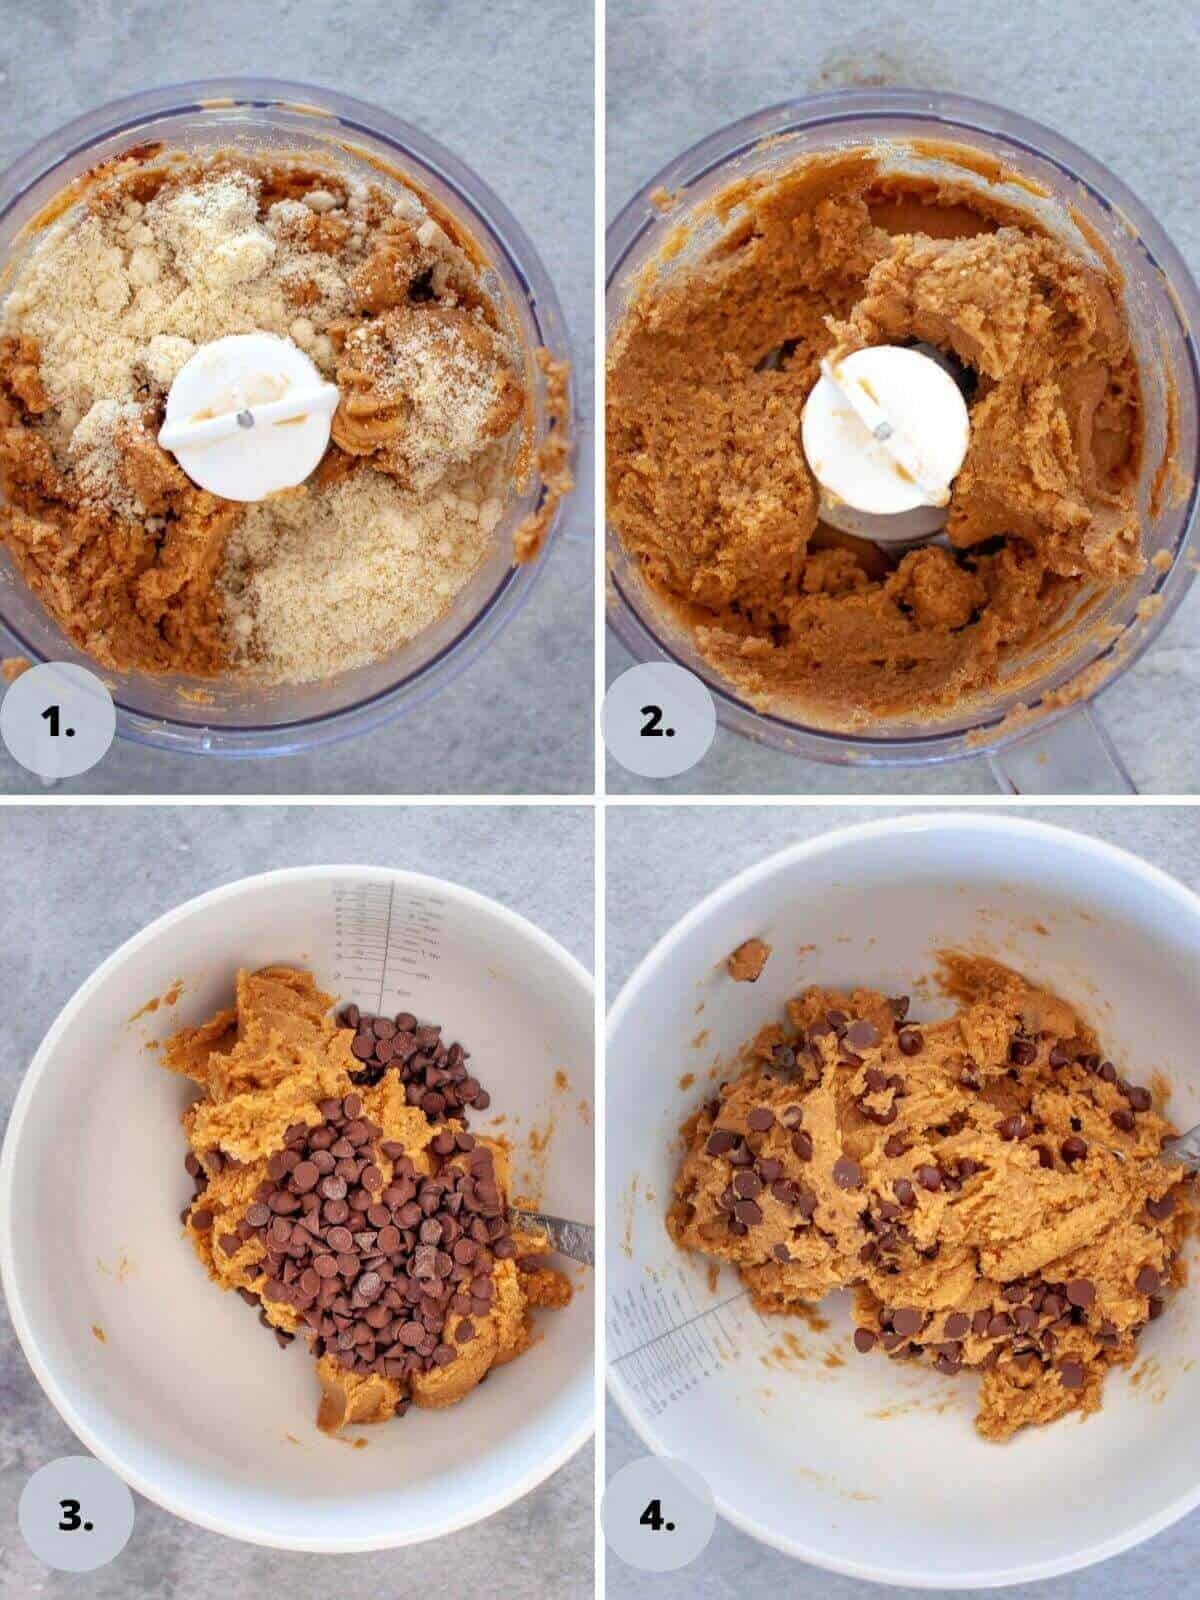 Making chickpea chocolate chip cookies